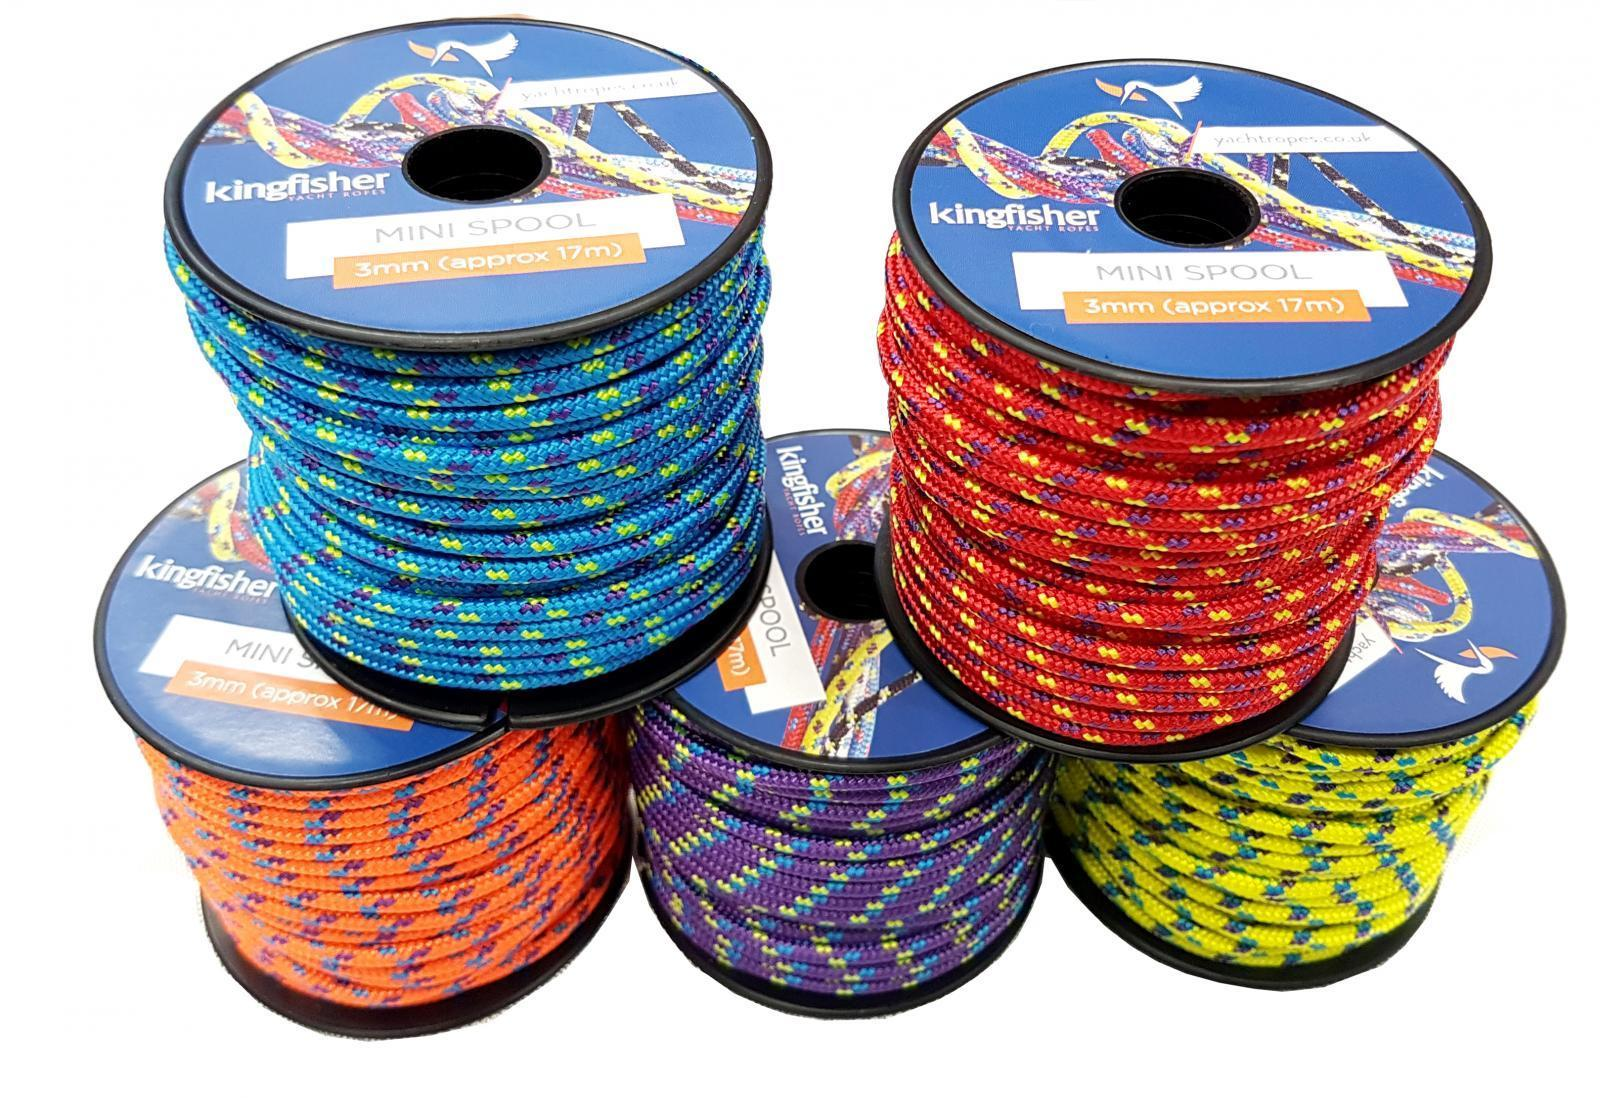 12 days of Christmas - Kingfisher mini spool